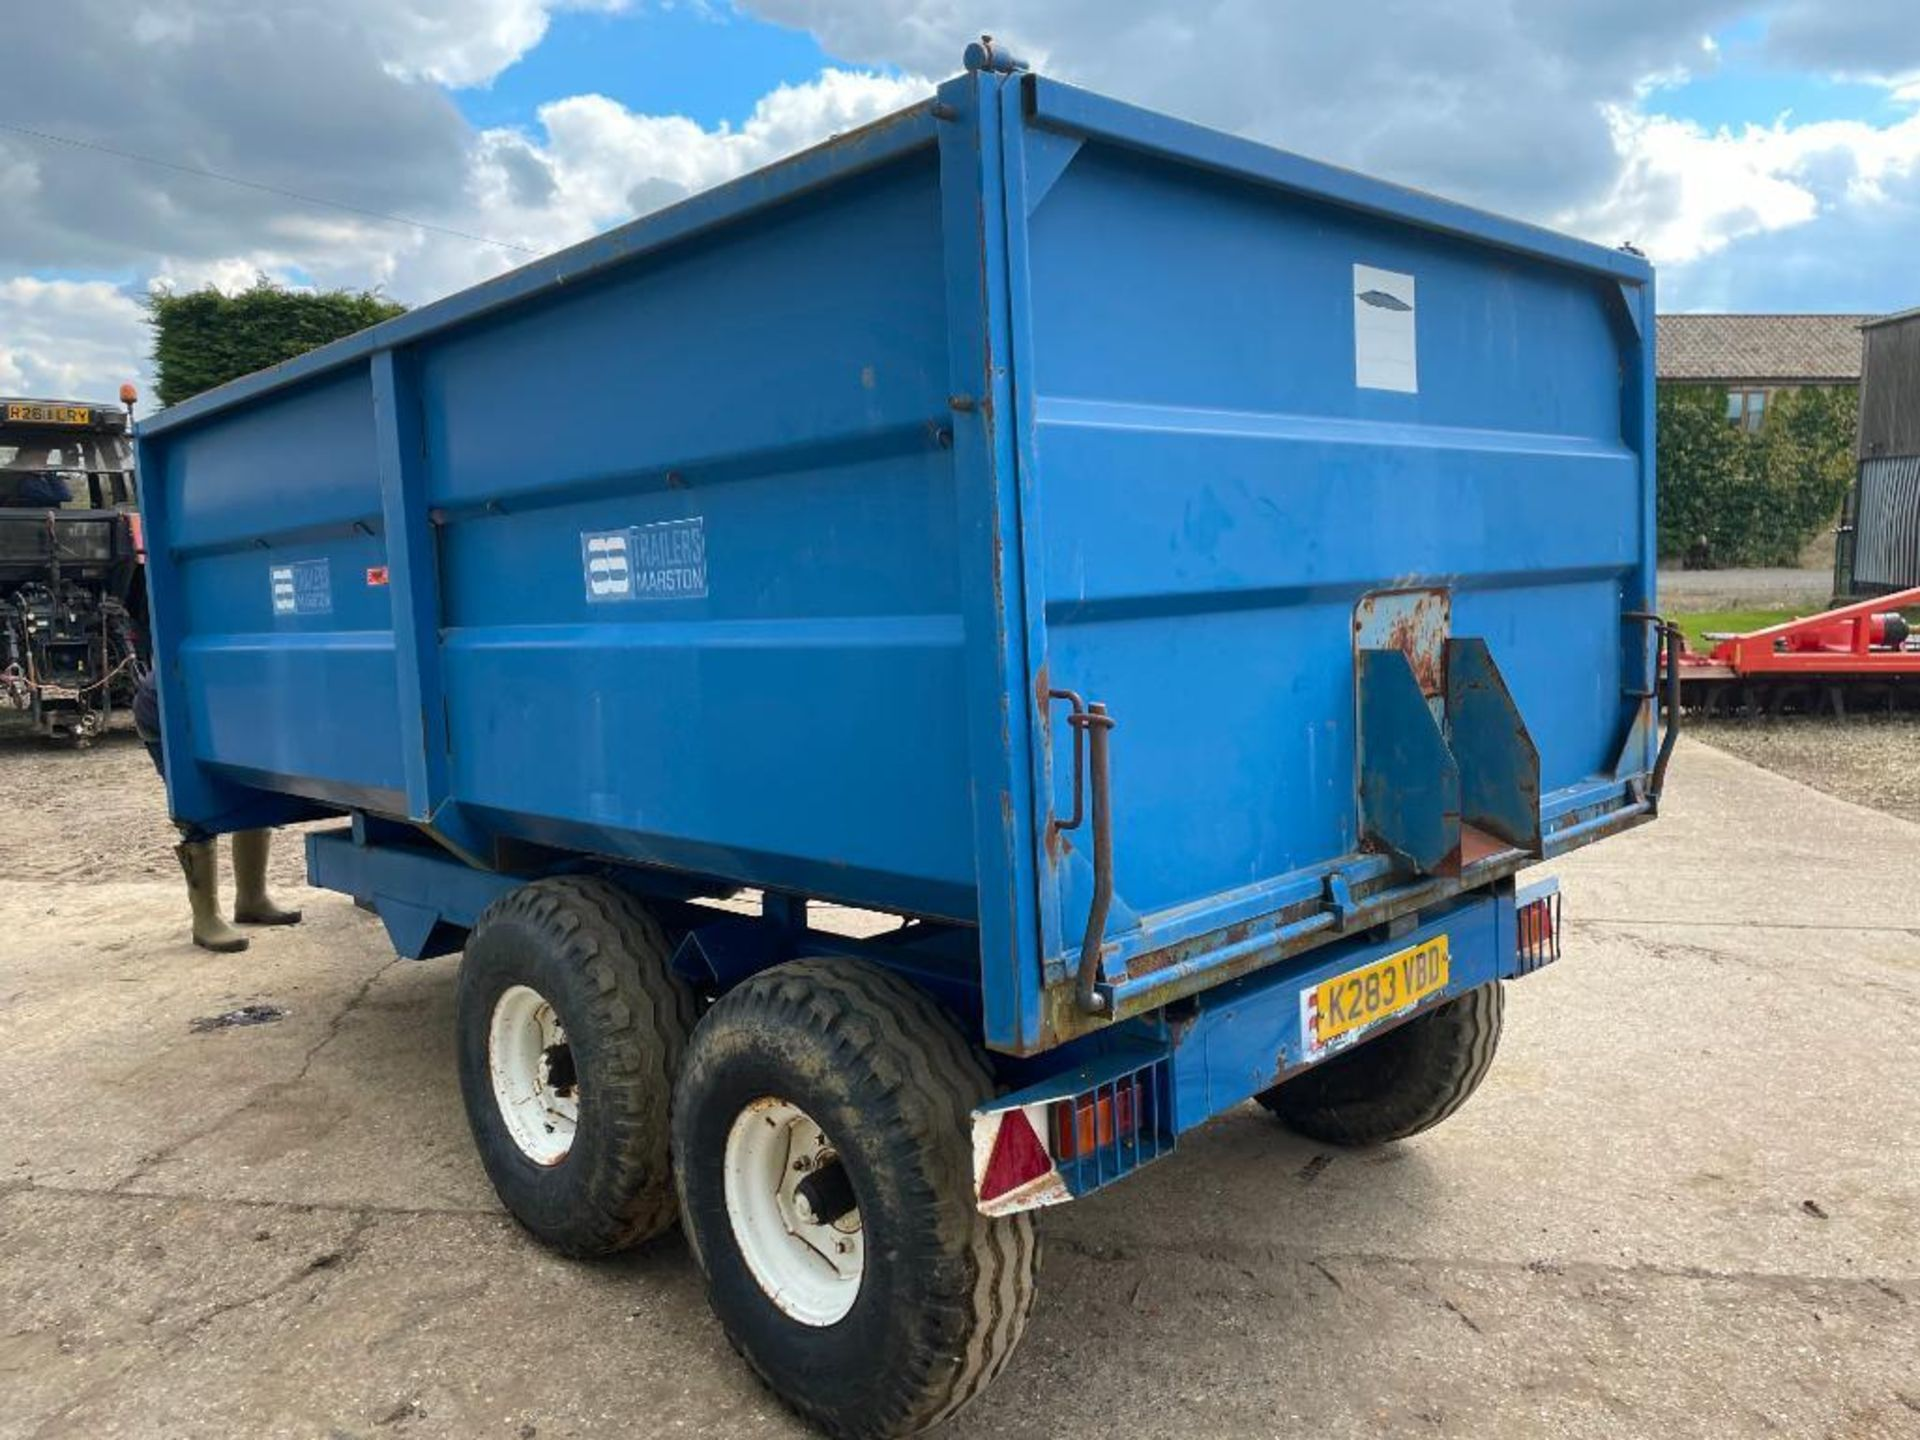 1986 AS Marston 8t twin axle grain trailer, manual tailgate and grain chute on 12.5/80-15.3 wheels a - Image 10 of 14